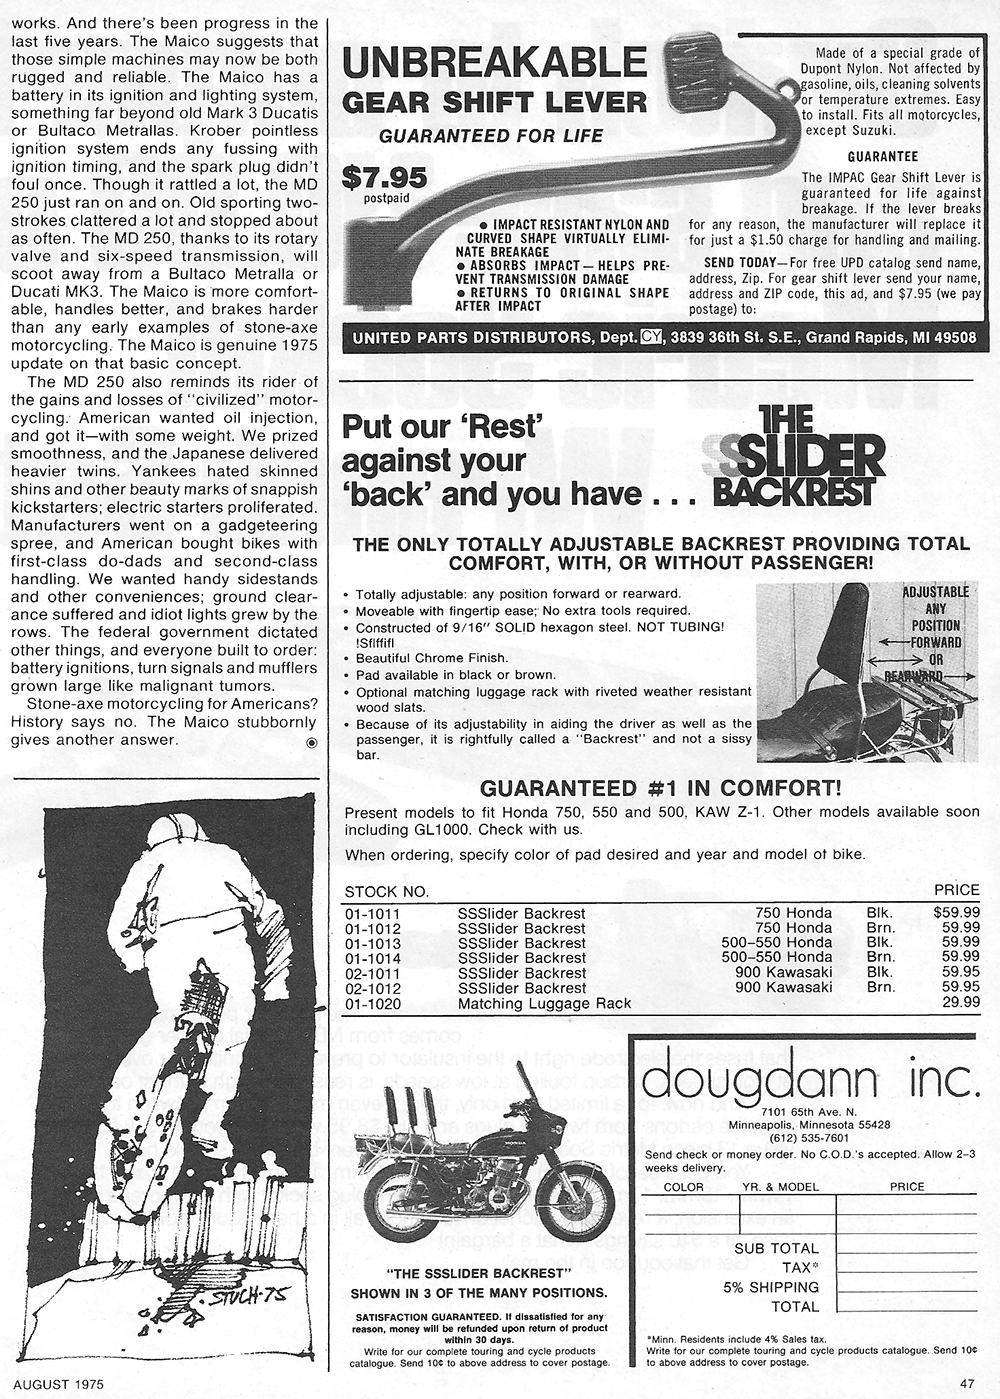 1975 Maico MD250 road test 7.png